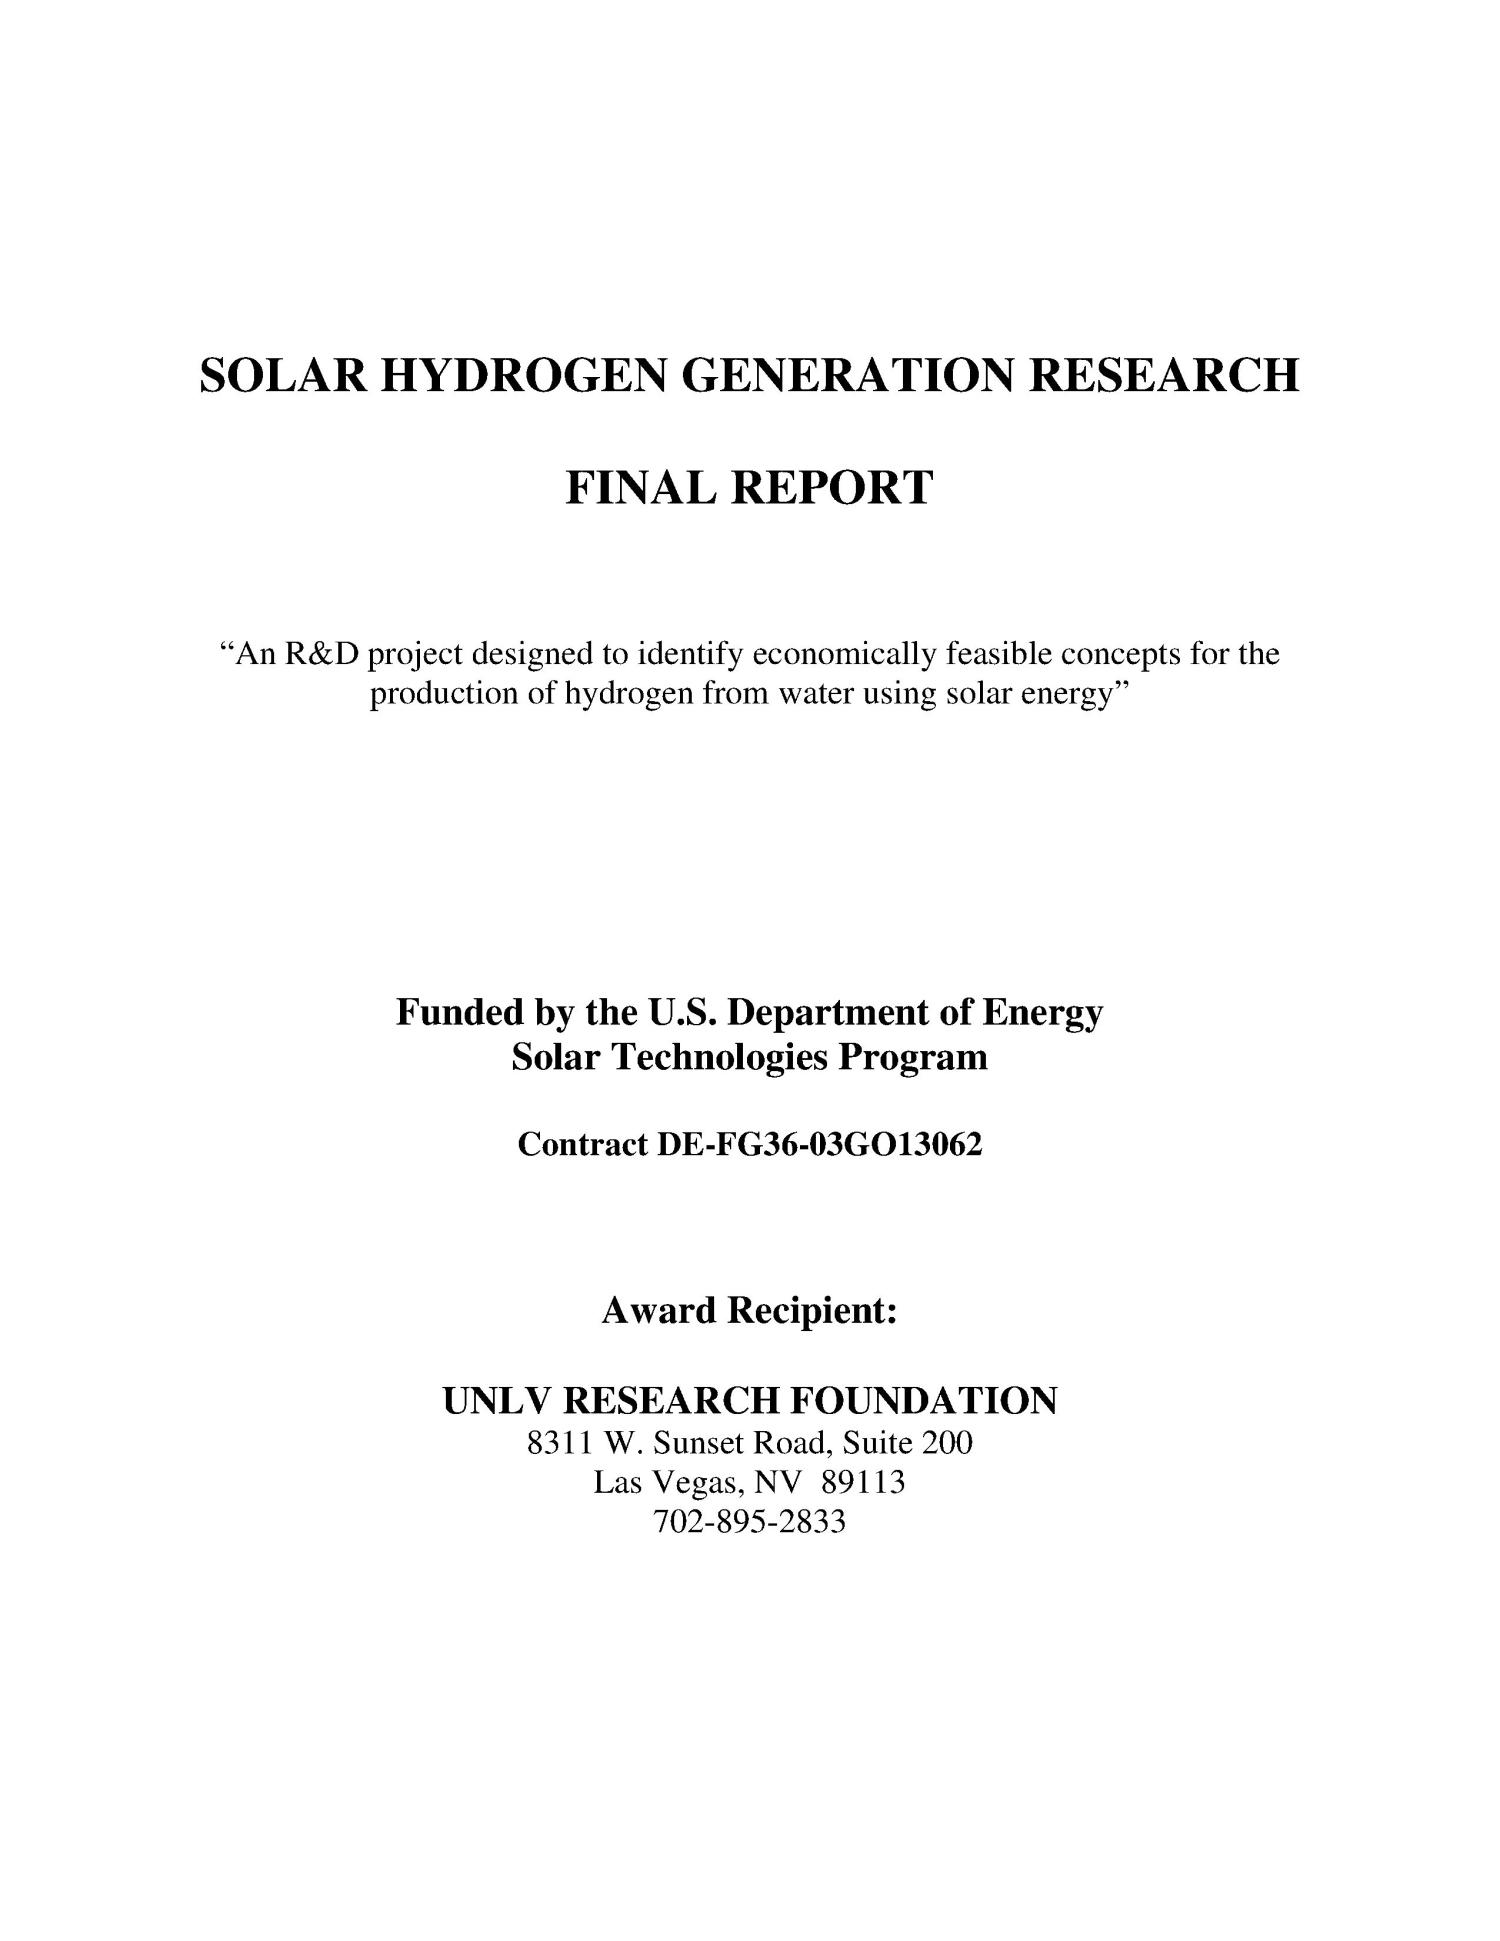 High Efficiency Generation of Hydrogen Fuels Using Solar Thermochemical Splitting of Water                                                                                                      [Sequence #]: 1 of 400